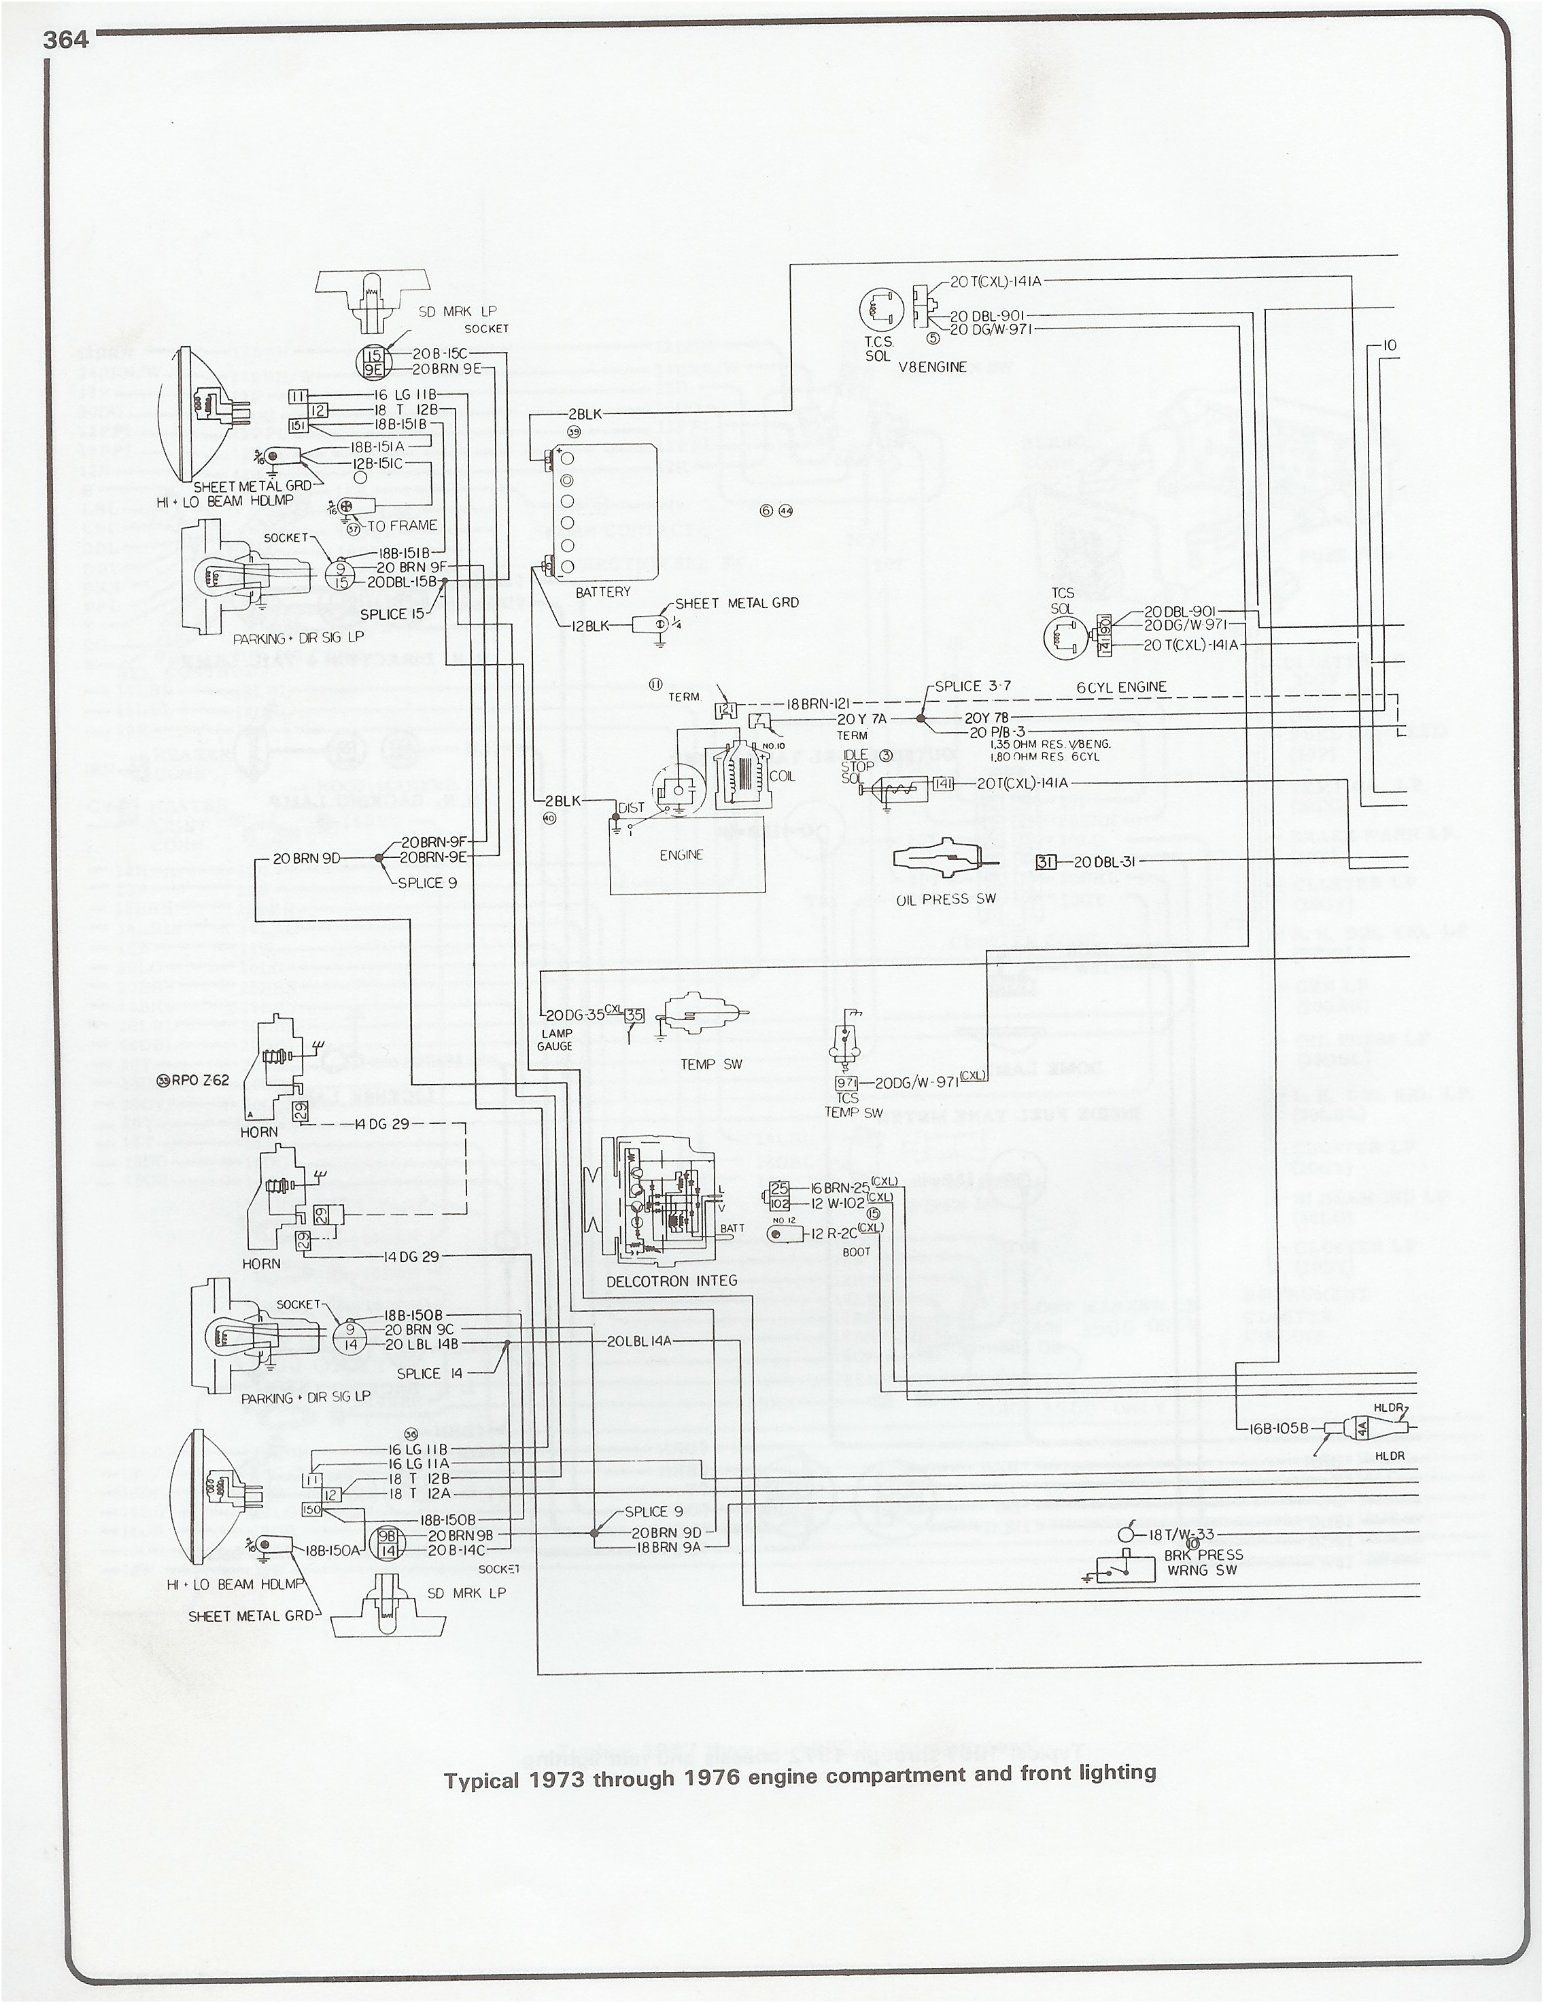 Universal Fuel Sending Unit Wiring Diagram on 2000 chevy tahoe transmission diagram, fuel gauge circuit diagram, 1990 ford fuel system diagram, fuel sending unit assembly diagram, ford evap system diagram, fuse box diagram, ford dual fuel tank diagram, water pump pressure switch diagram, fuel injection diagram, hydraulic pump diagram, fuel sending unit honda, jeep fuel system diagram, fuel sending unit tools, jeep electrical diagram, ignition switch diagram, fuel sending unit hose, fuel sending unit problems, pressure tank installation diagram, gas diagram,